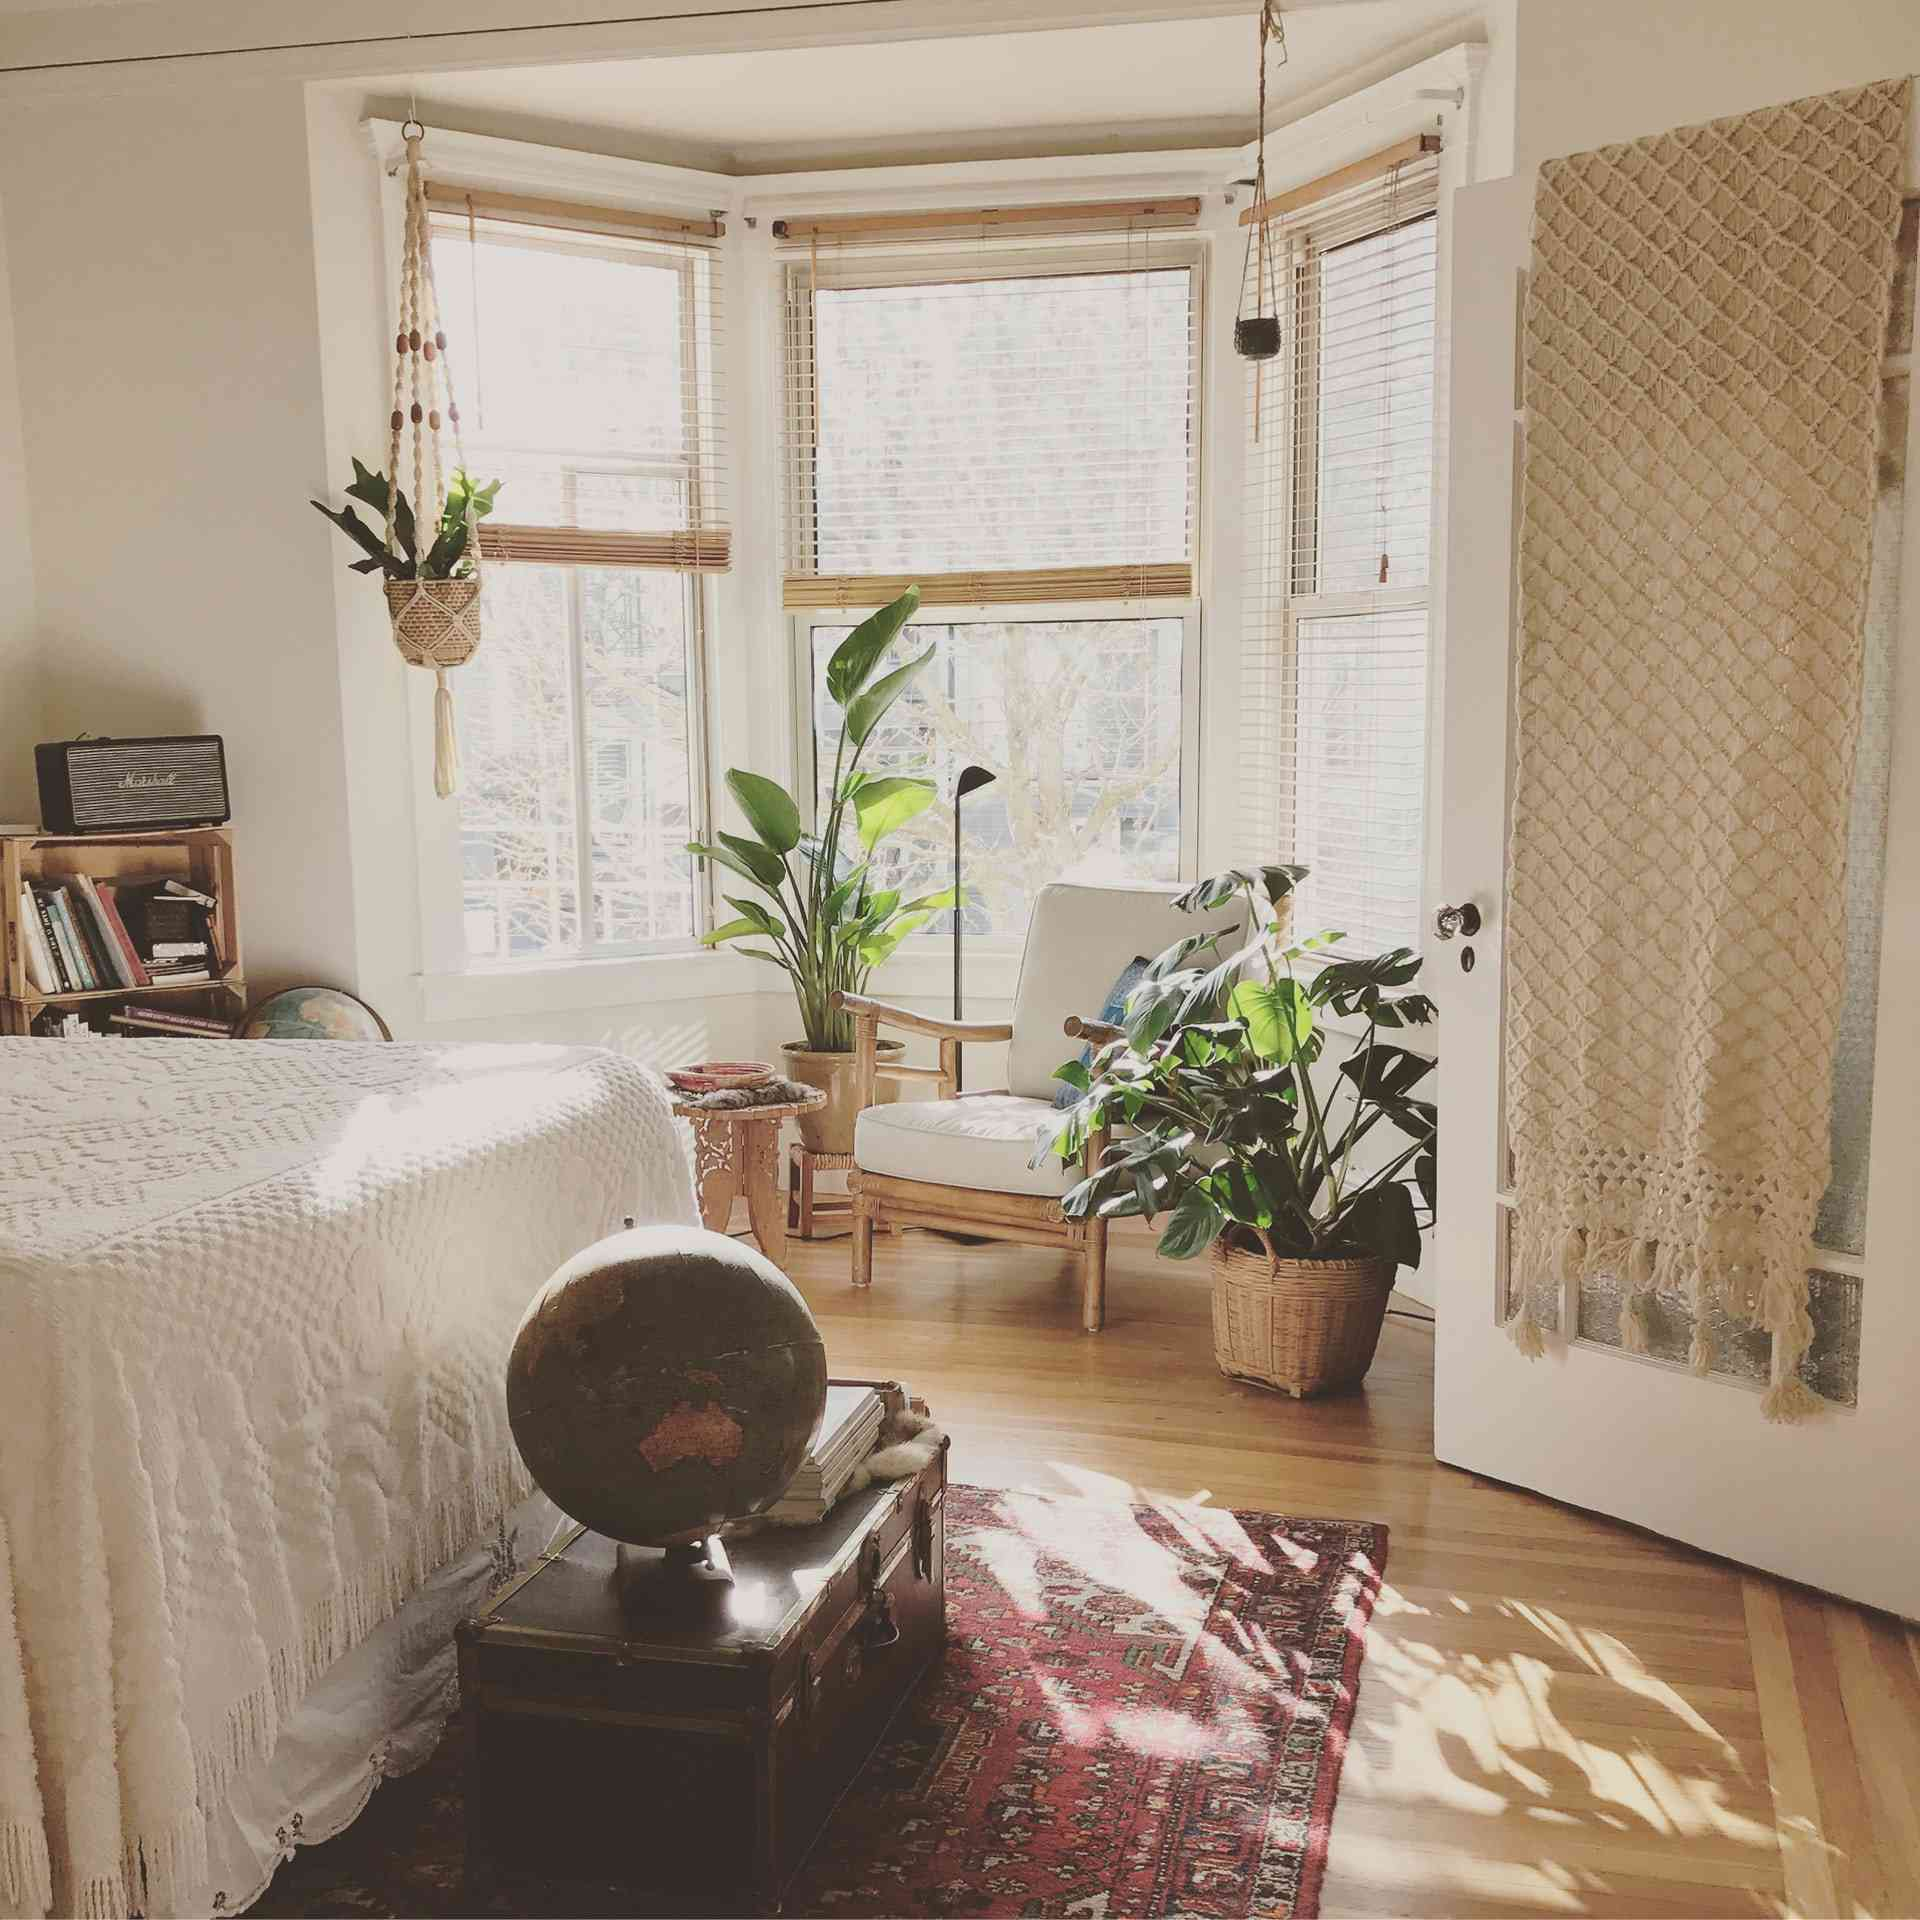 cozy bedroom with chair by window